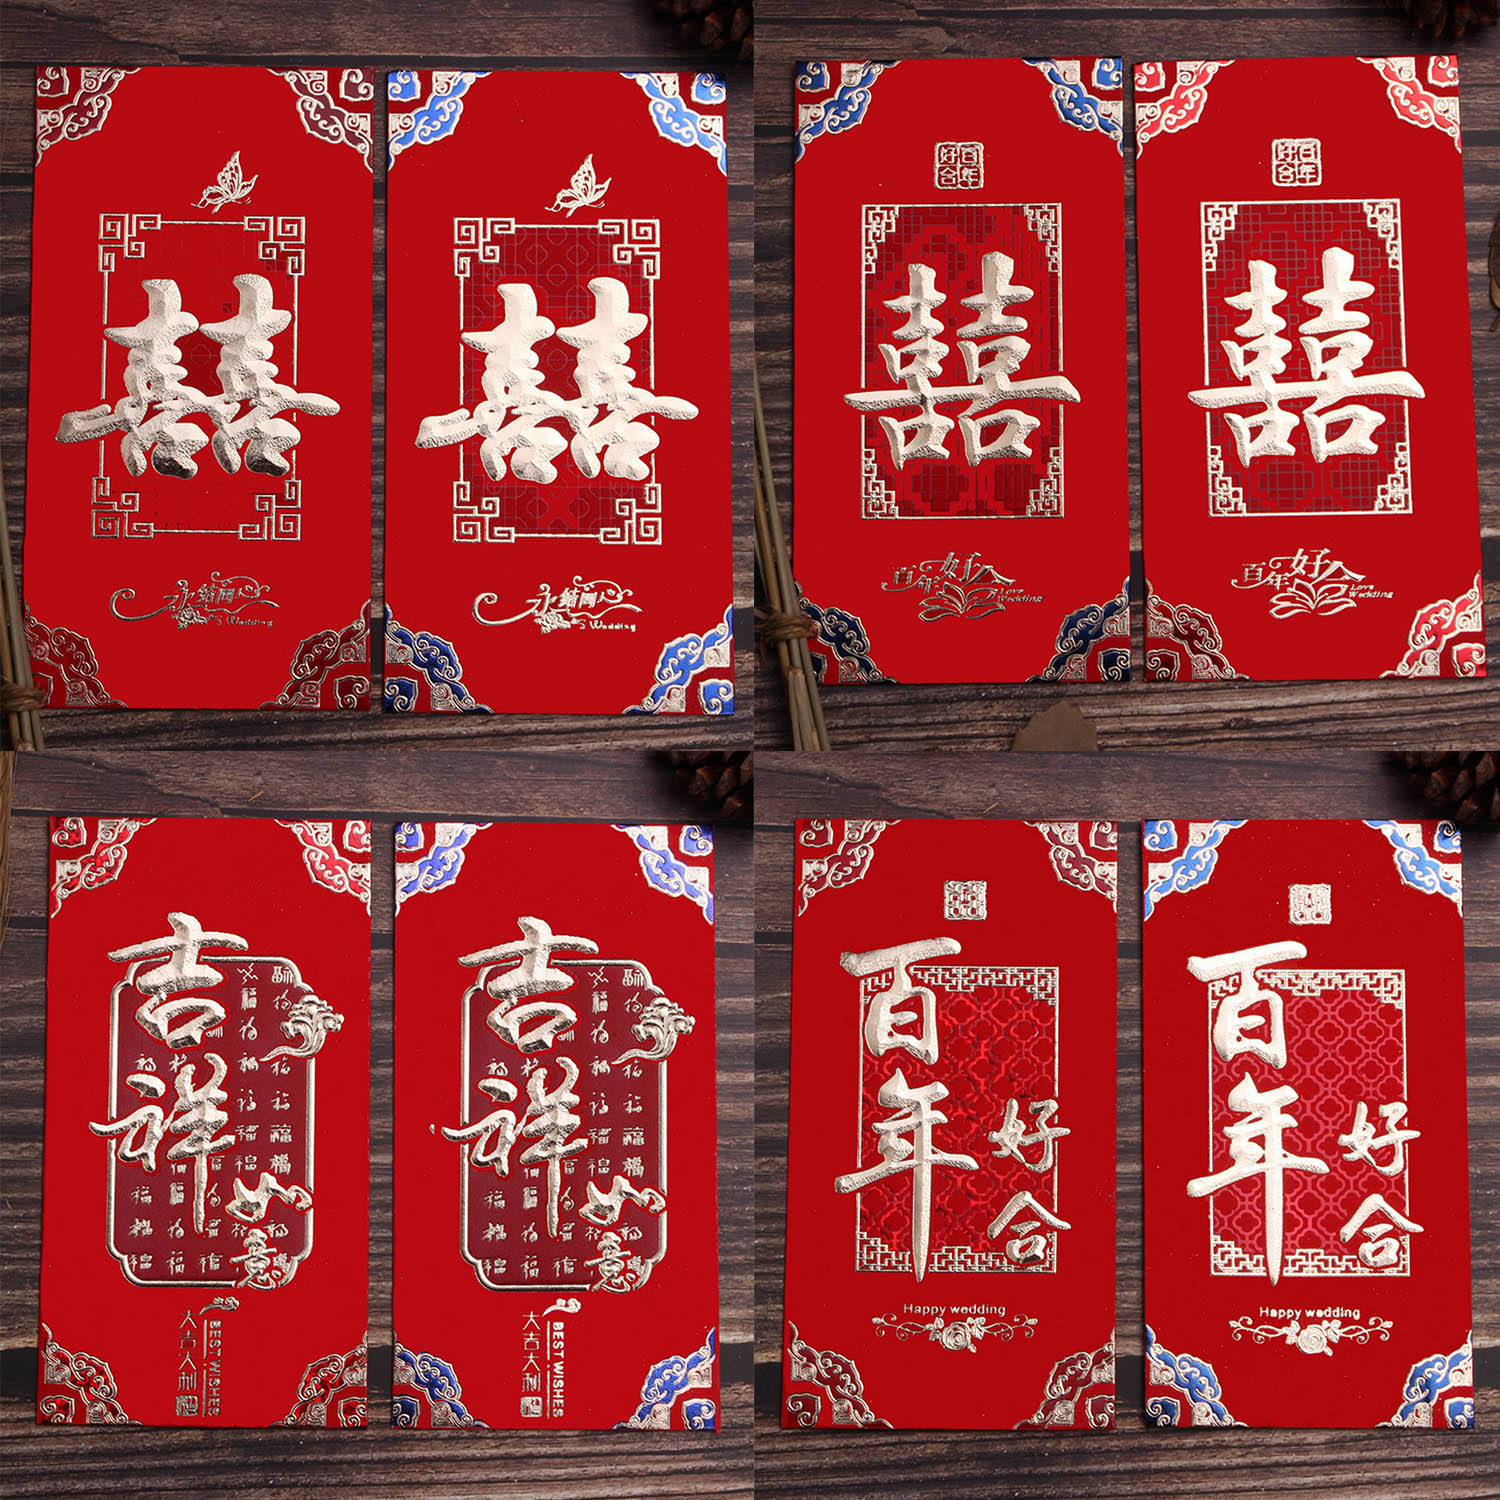 Behogar 24PCS 8.6x16.6cm Chinese Red Envelopes Hong Bao Hongbao Lucky Money Packets for Wedding Engagement Party